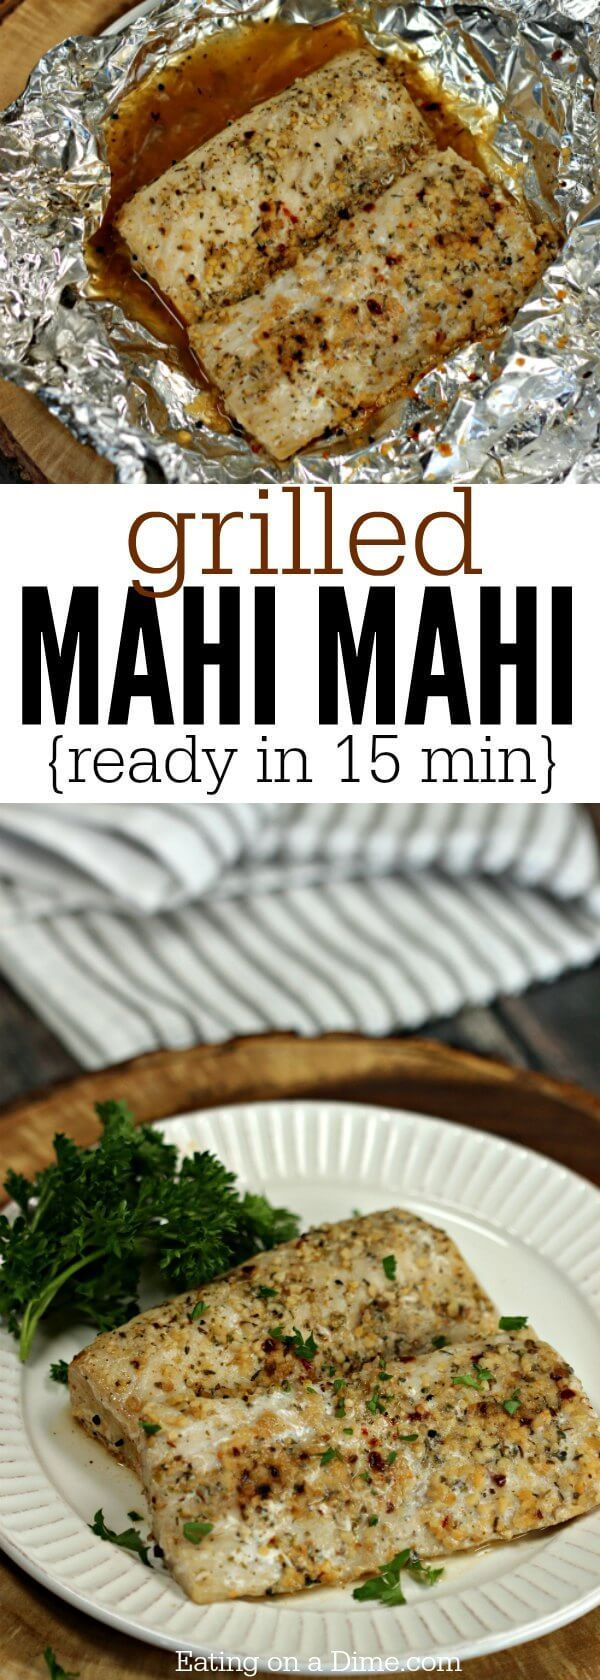 You will love this simple Mahi Mahi recipe! Dinner comes together quickly when you make Grilled Mahi Mahi recipe! In less time it takes to get take out, this fish will be ready! It's packed with garlic and herb seasoning! Yum!